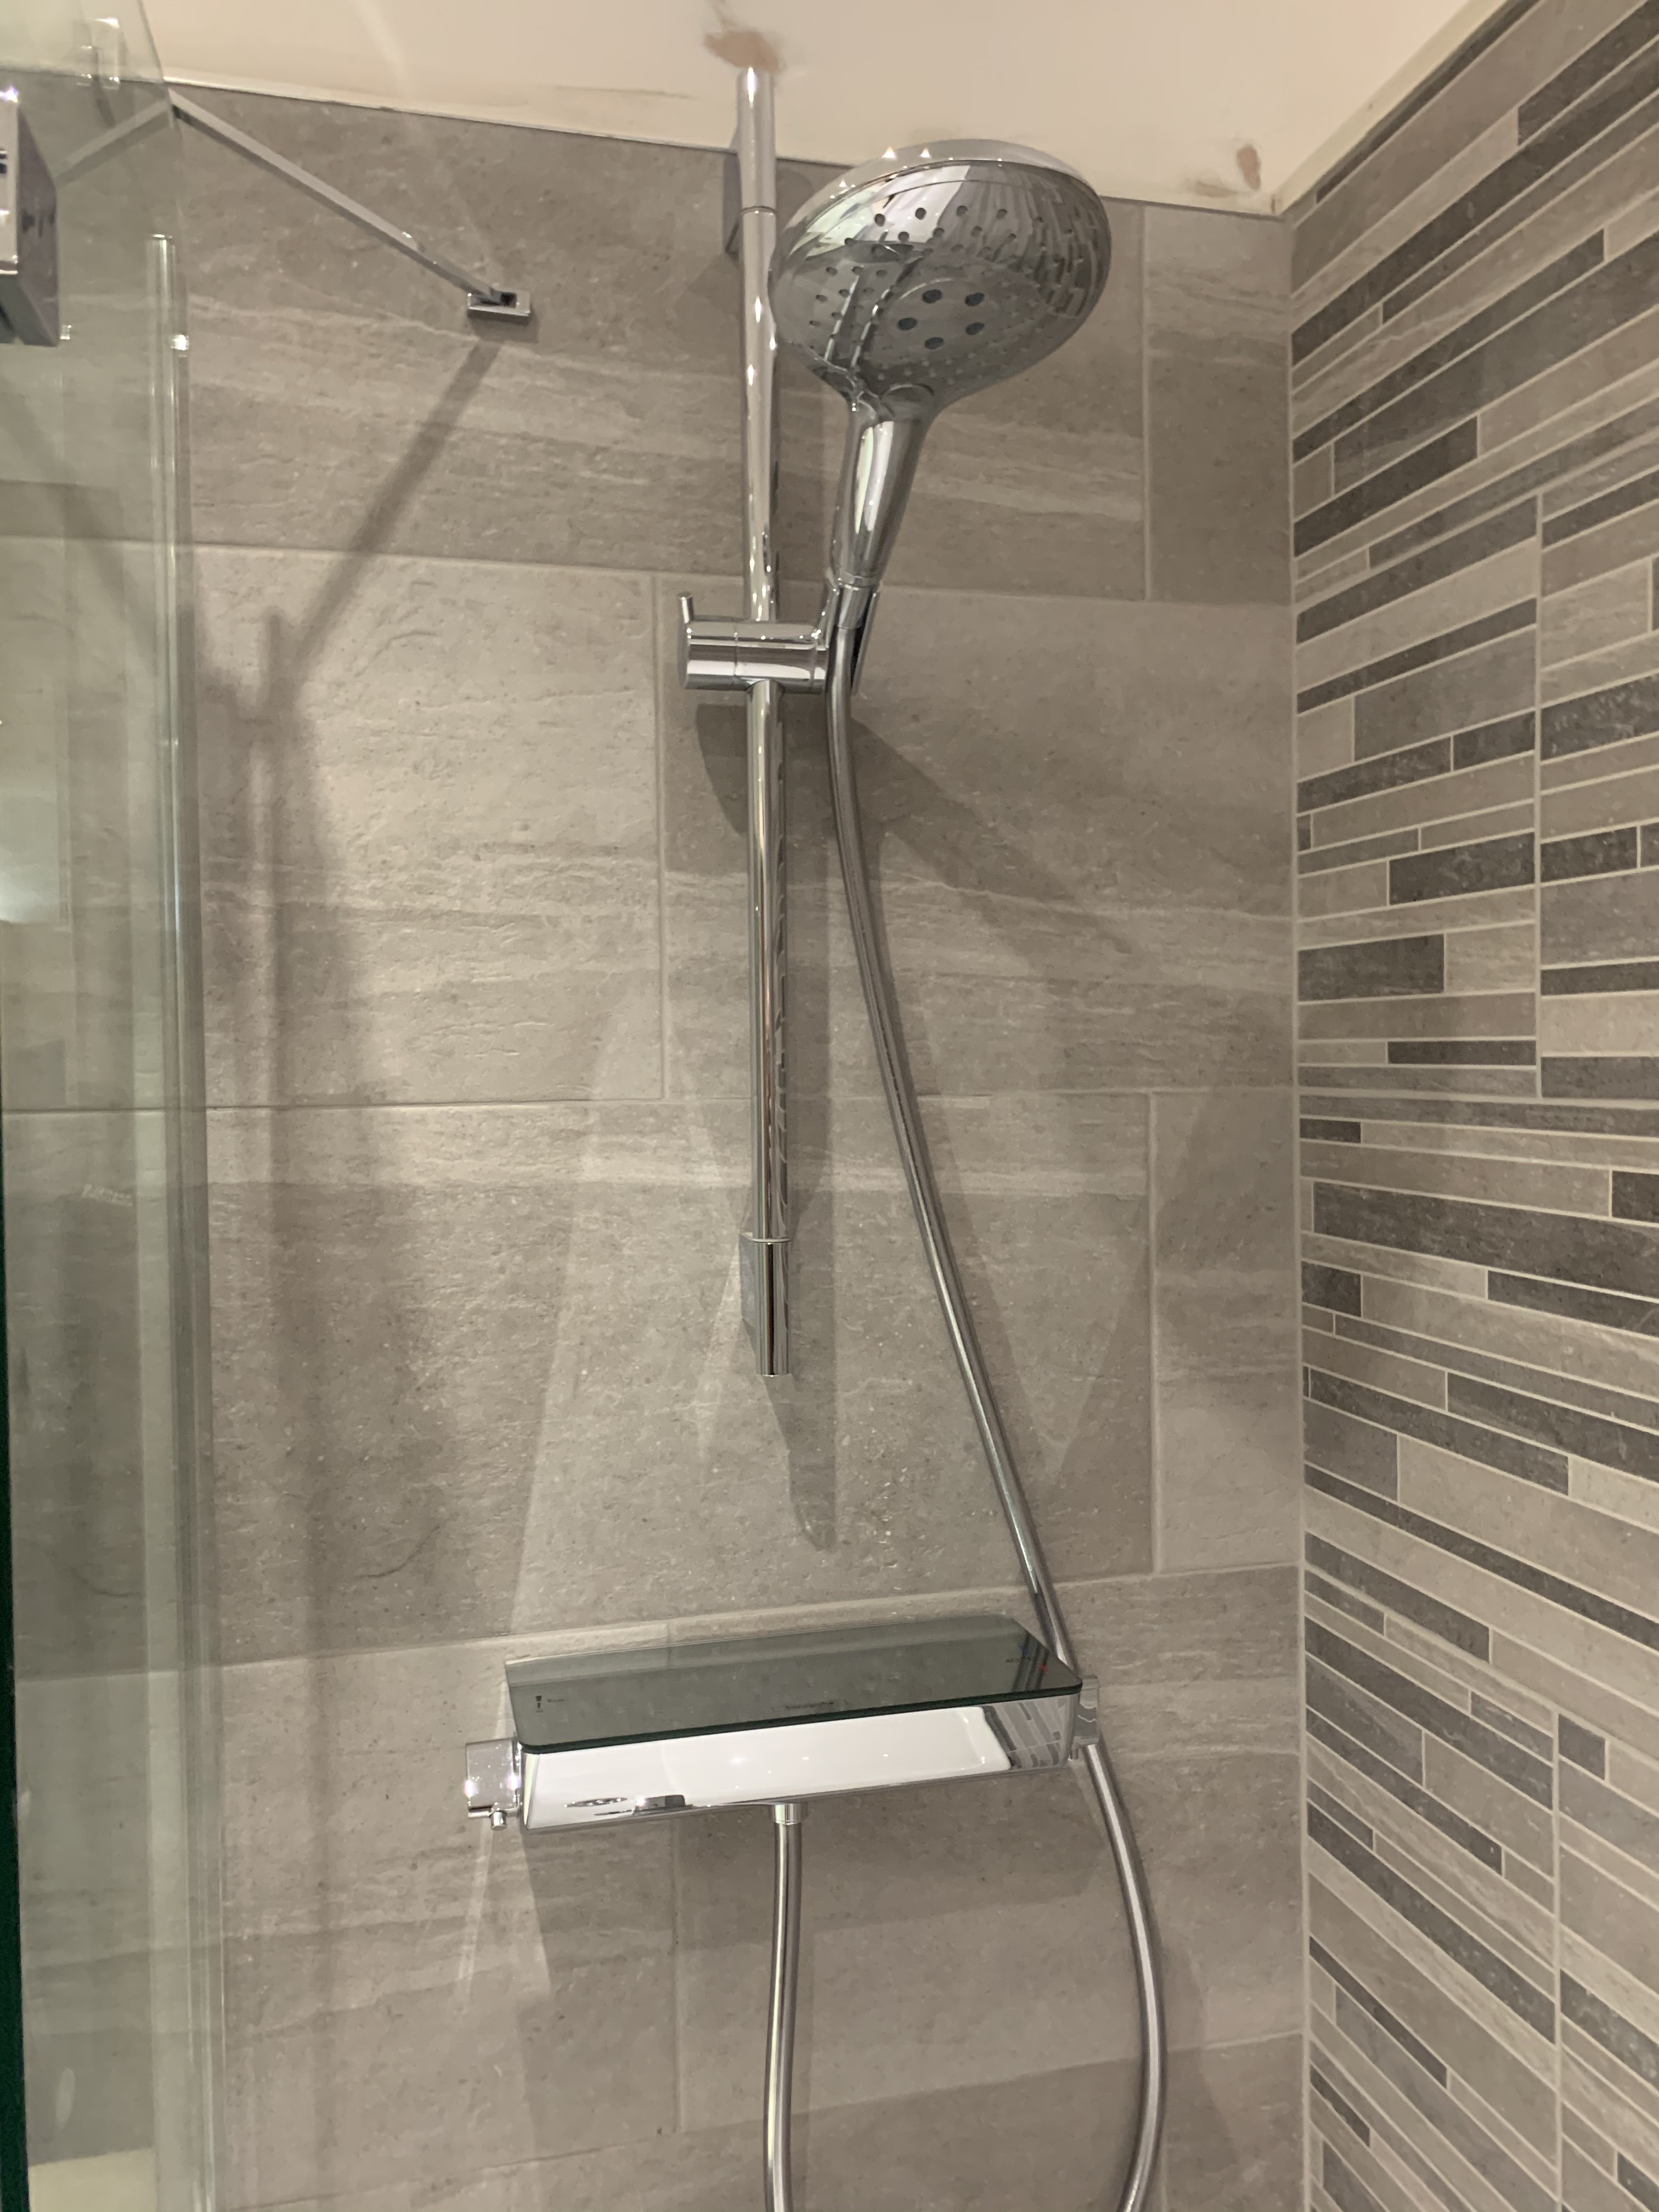 Hansgrohe Raindance select Exposed shower | Wakefield Bathrooms